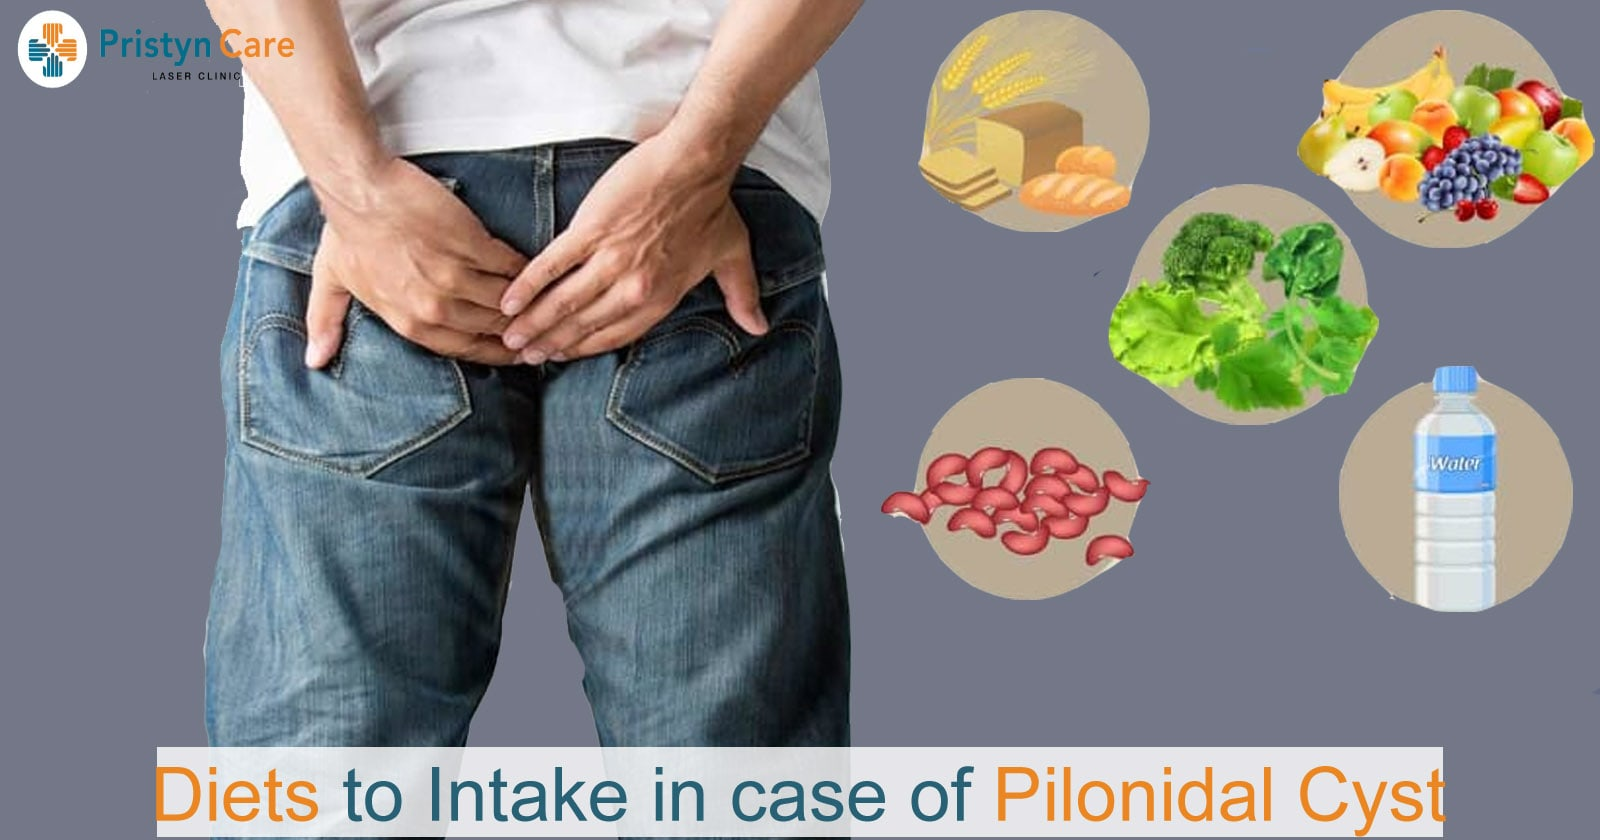 Diets to Intake in Case of Pilonidal Cyst